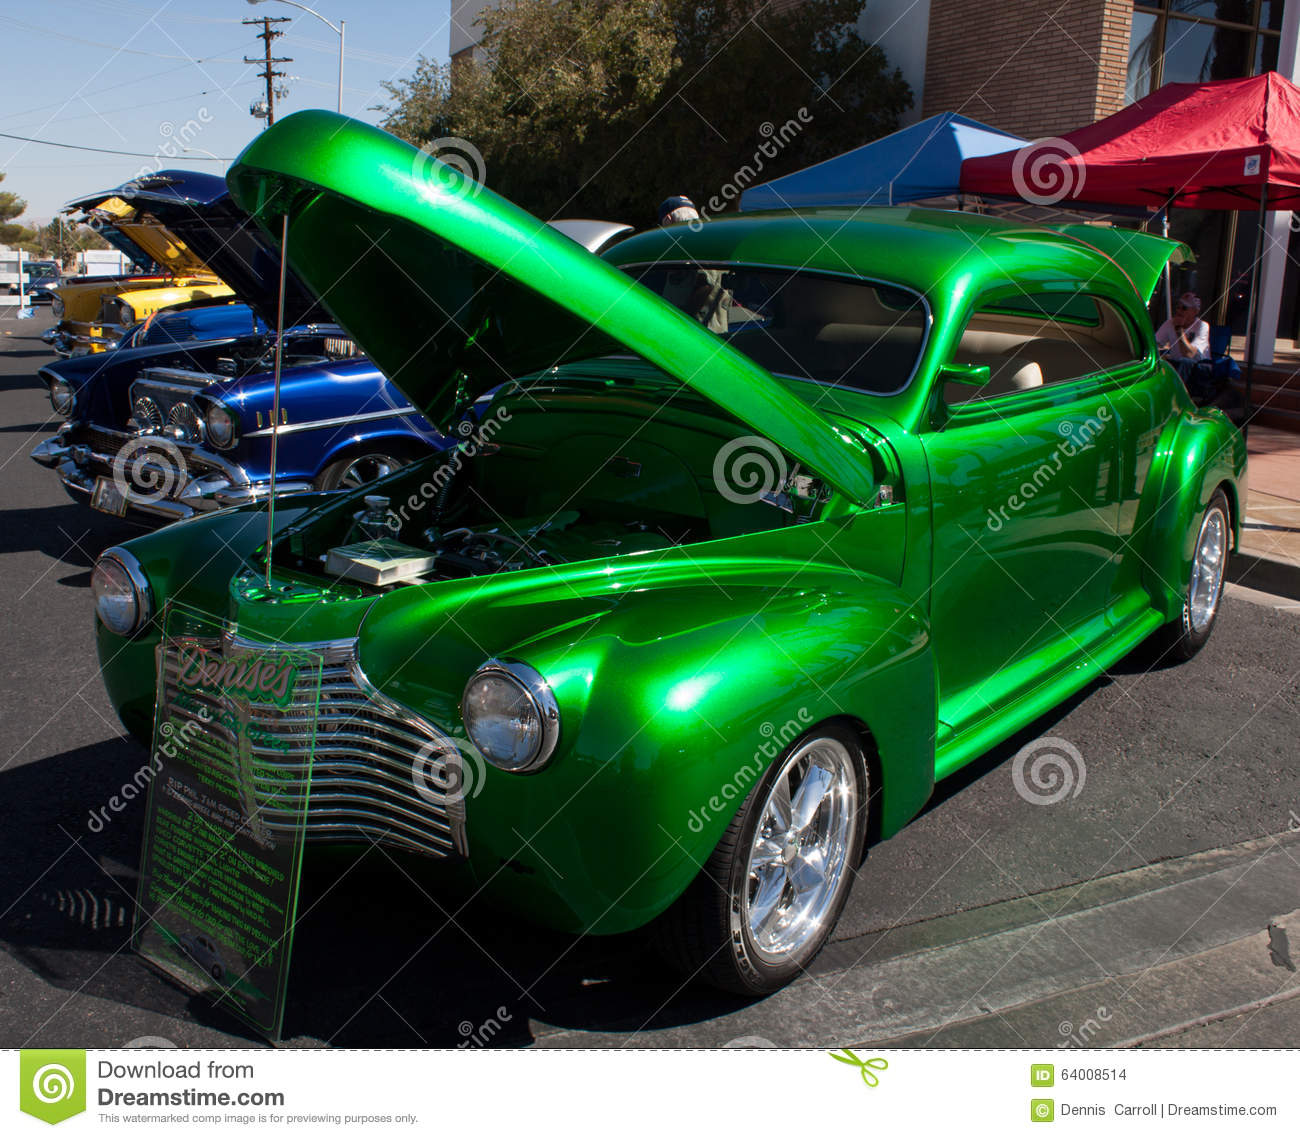 1941 Chevy editorial stock image  Image of green, muscle - 64008514